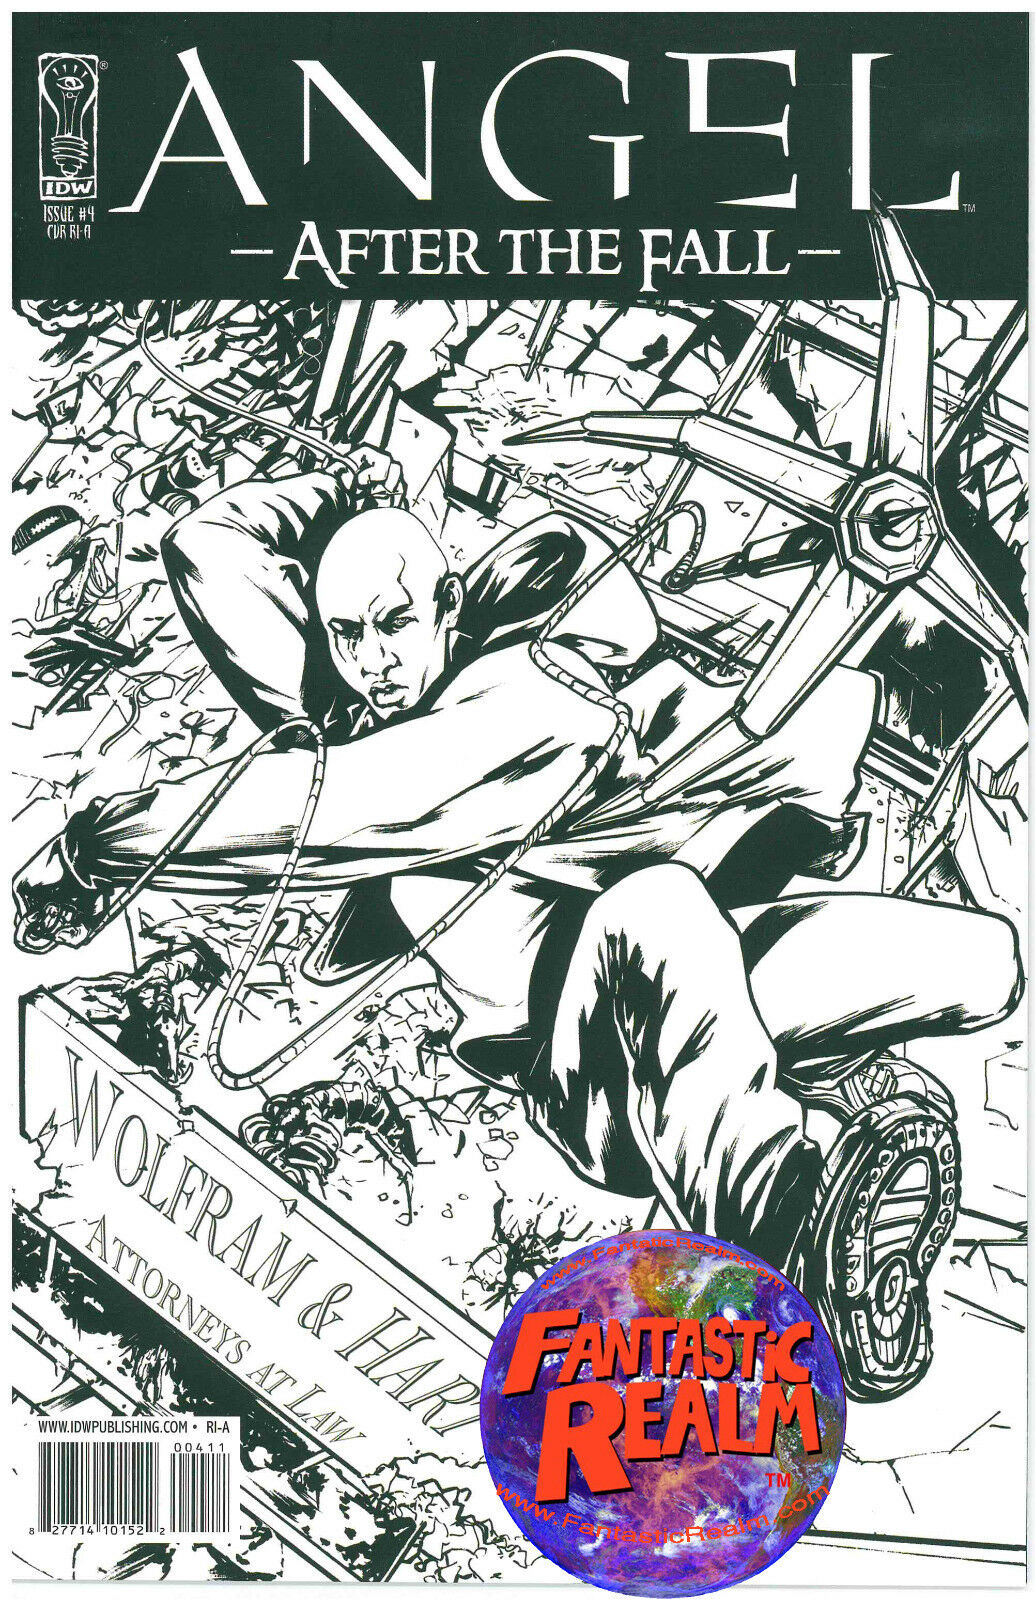 ANGEL #4: AFTER THE FALL BLACK AND WHITE VARIANT COVER (2008) IDW COMICS